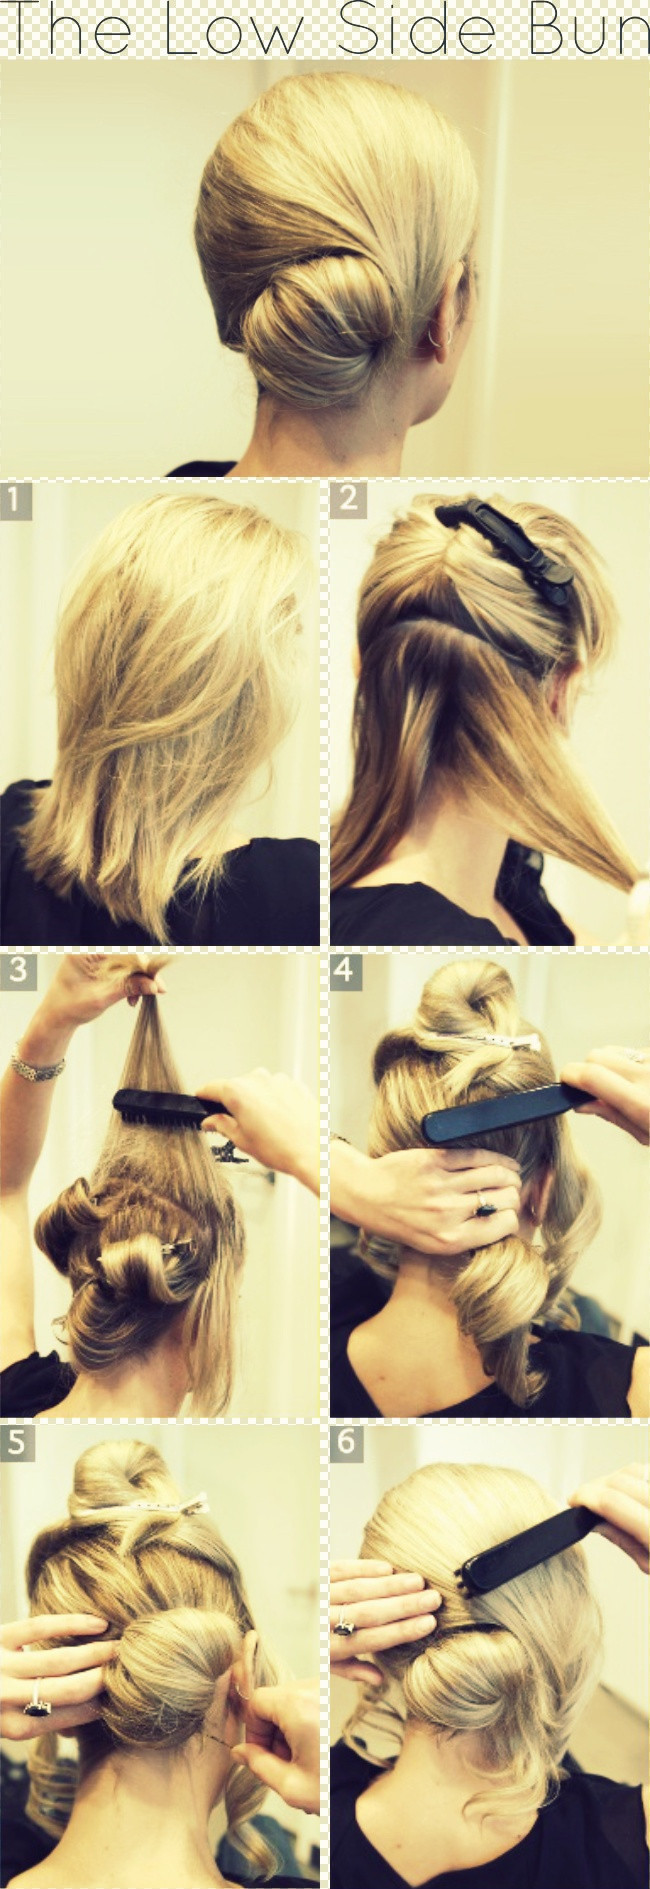 Best ideas about Bun Hairstyles For Short Hair Step By Step . Save or Pin Graceful and Beautiful Low Side Bun Hairstyle Tutorials Now.